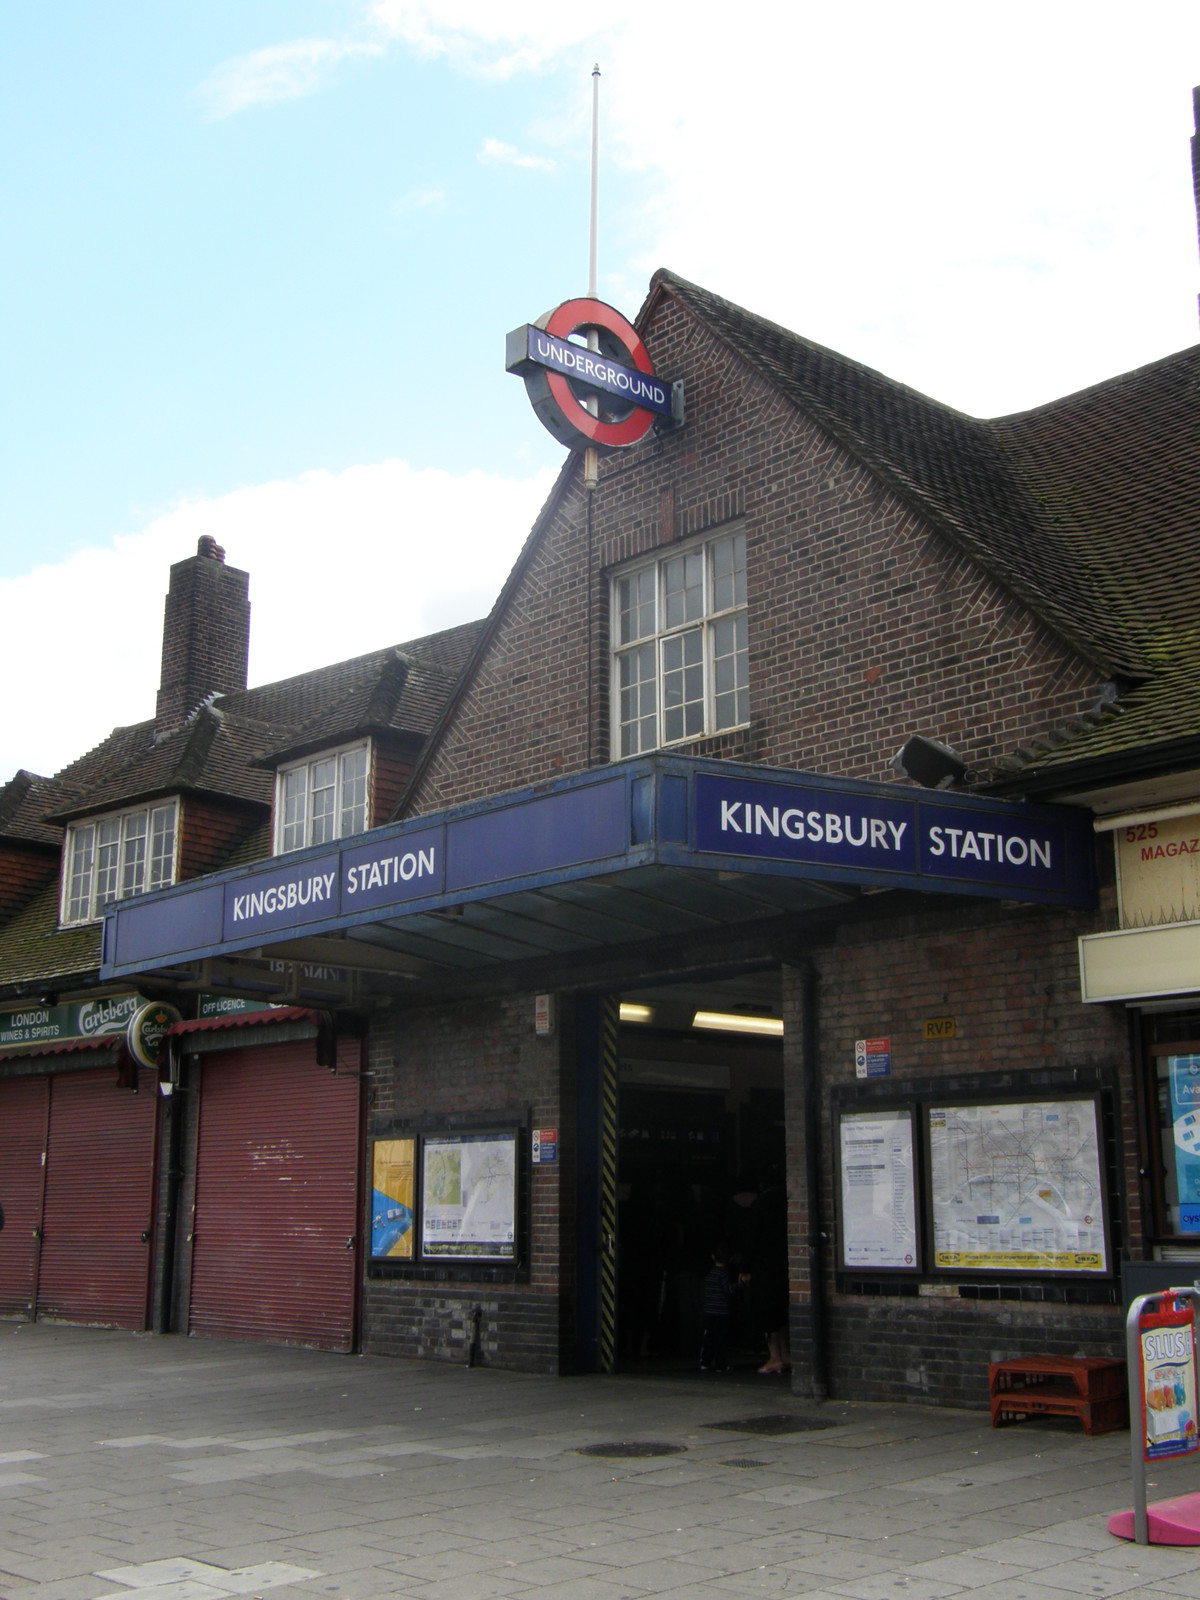 Kingsbury station